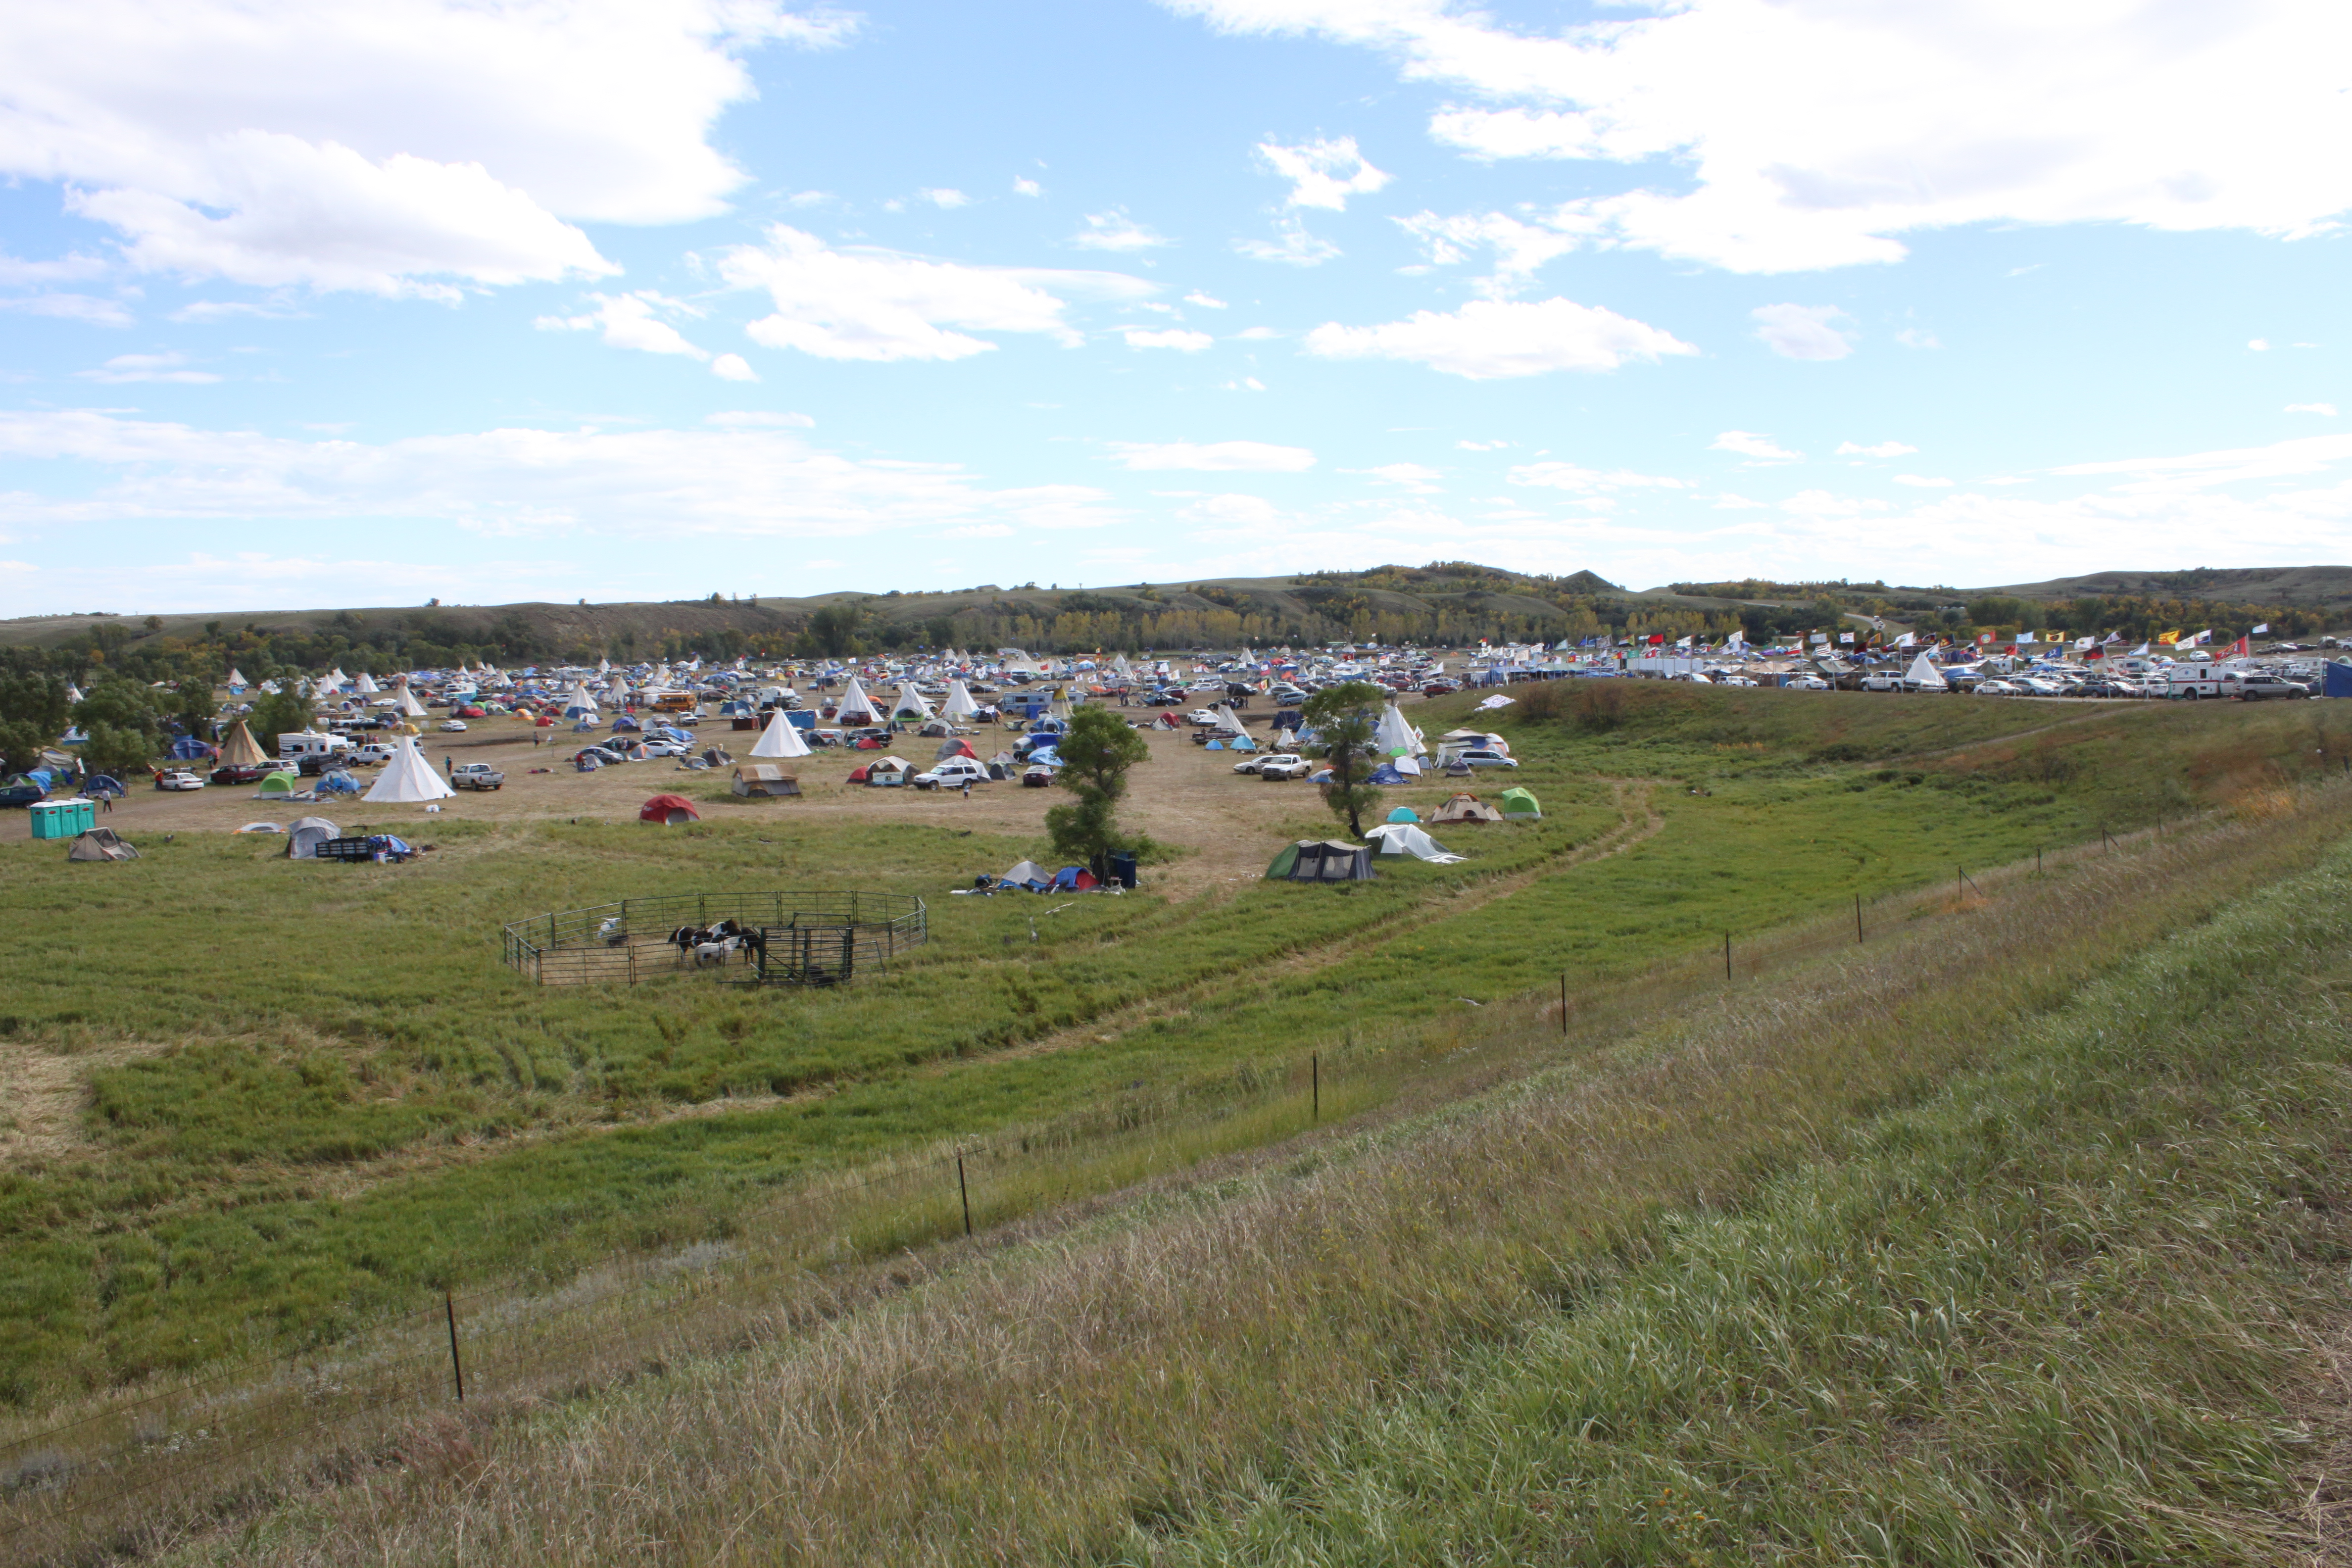 RIO BERGH THE SPECTRUM | The camp of thousands few even knows exists in Fargo.